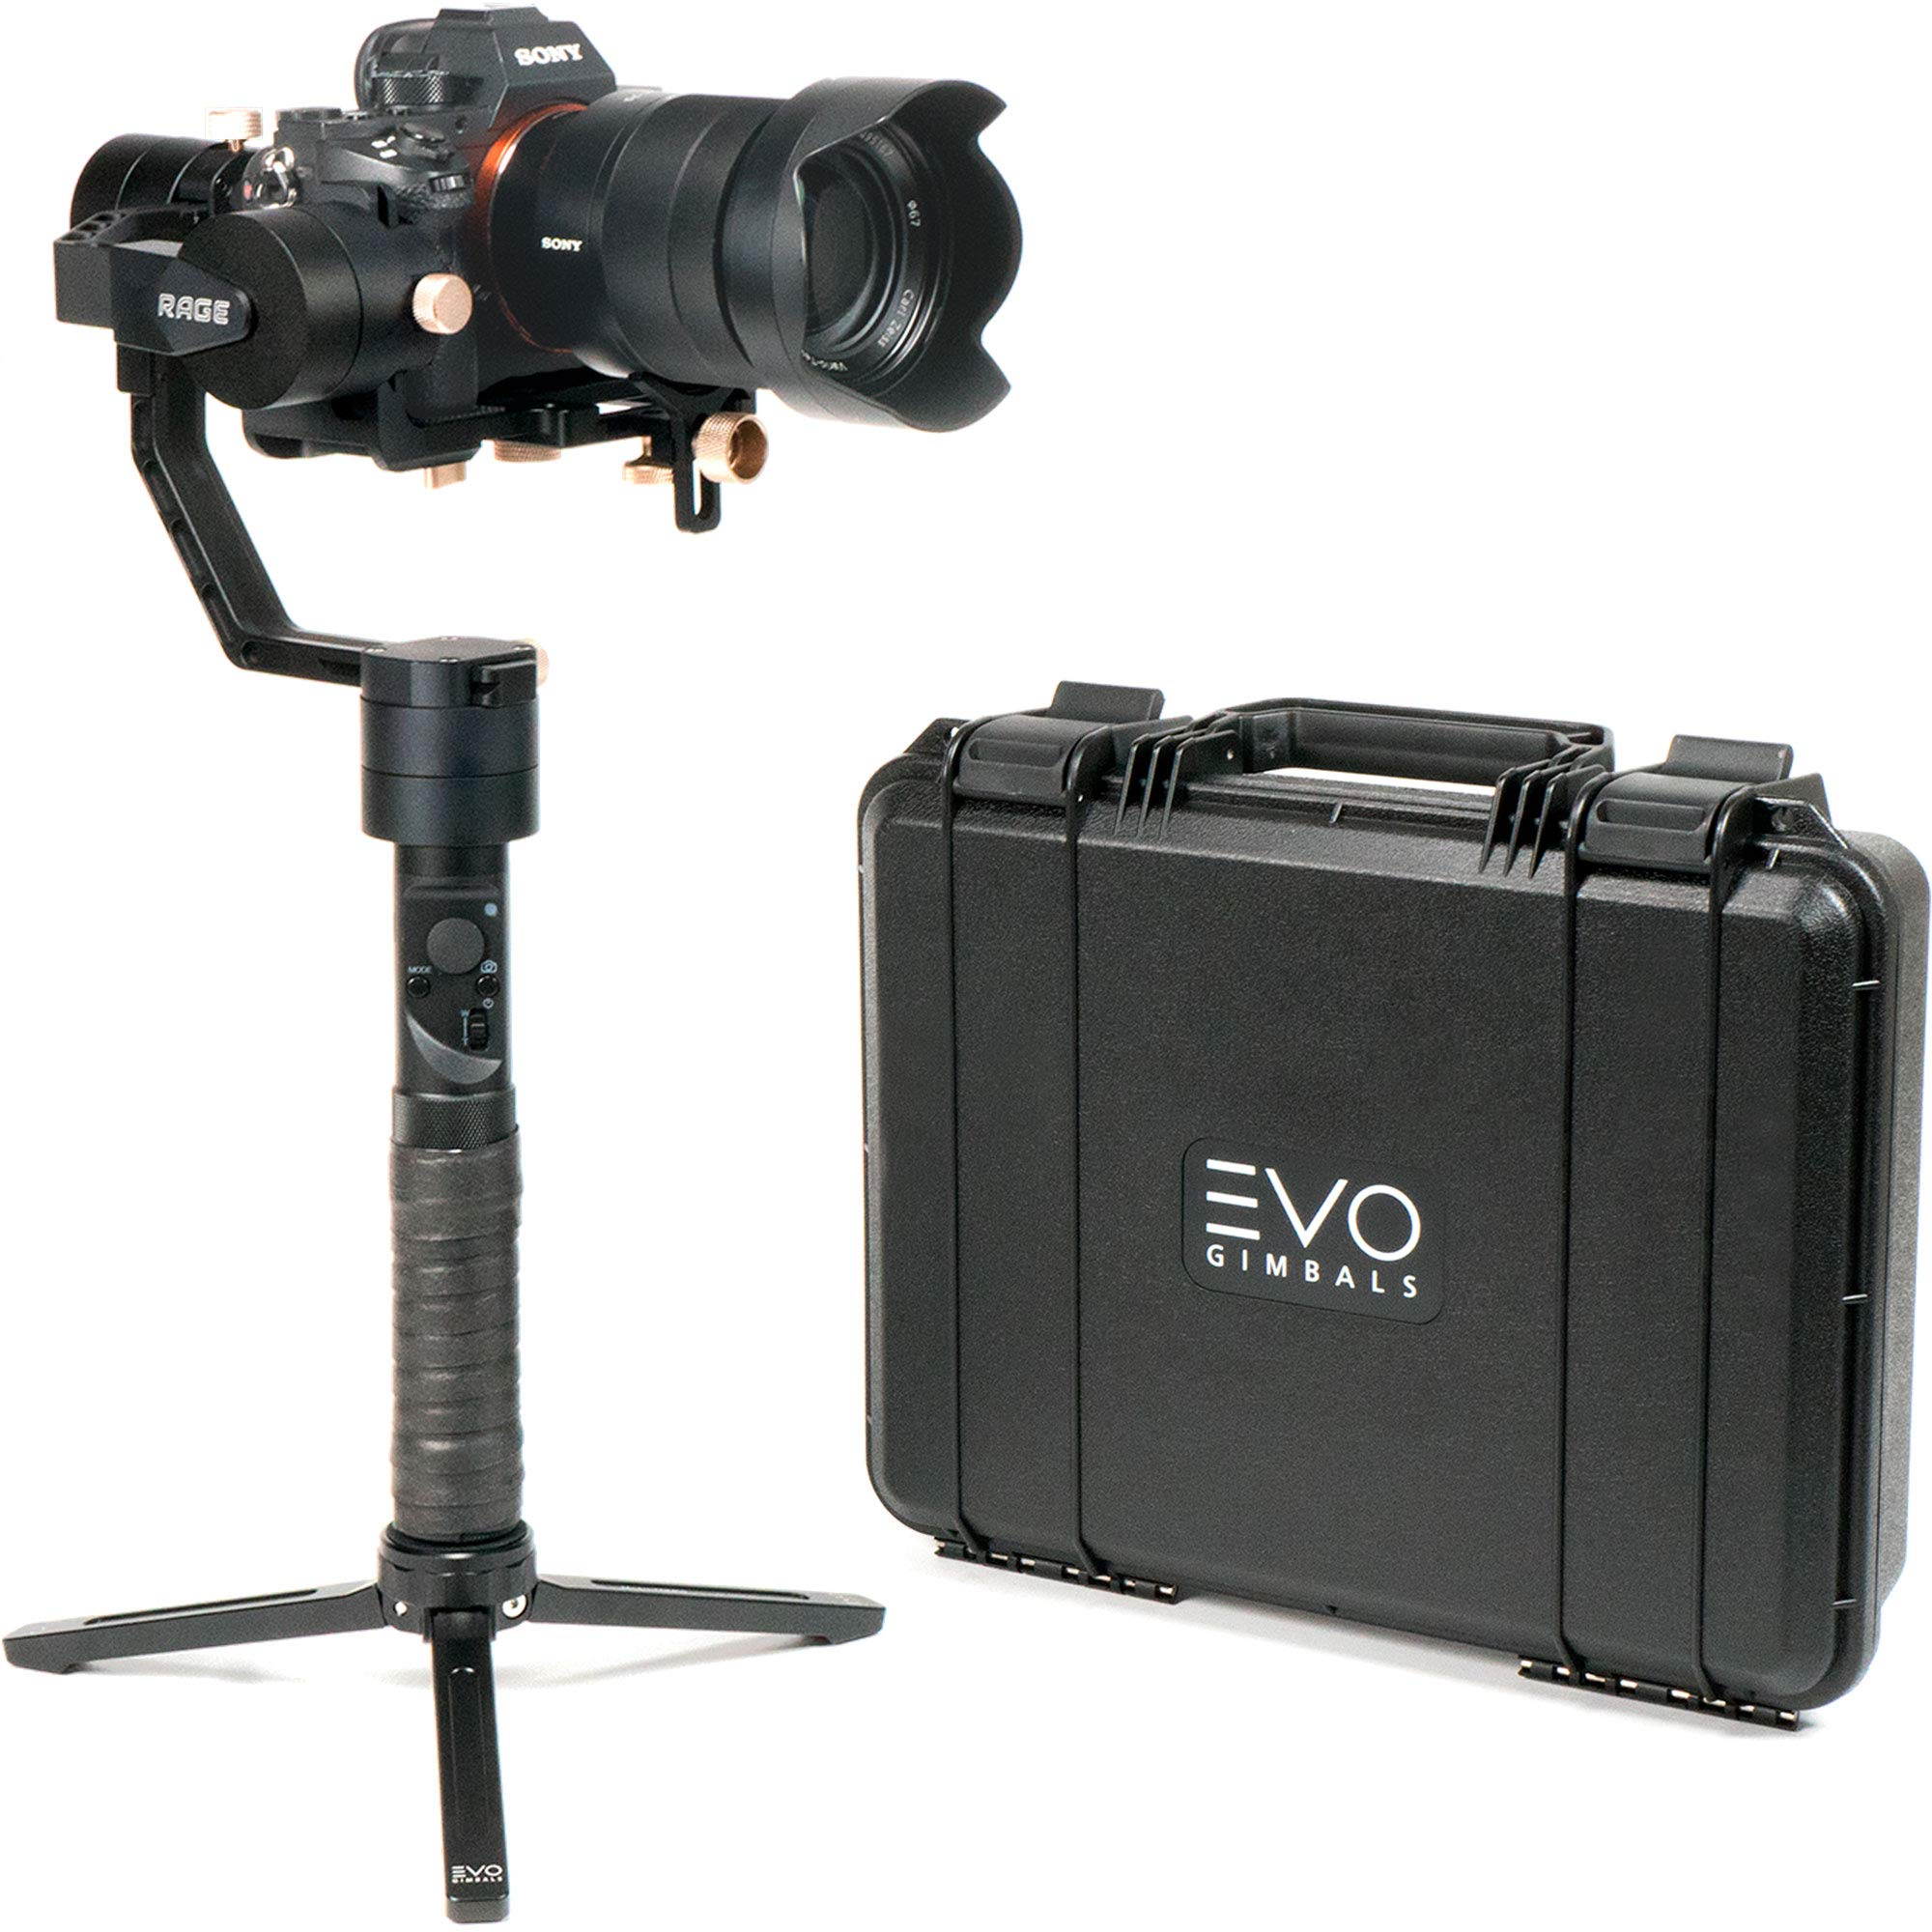 EVO Rage Gen2 Camera Stabilizer for DSLR or Mirrorless Cameras, Works with Sony, Panasonic and Most Cameras 0.75 to 5.5lbs, 1 Year US Warranty and Tech Support by EVO Gimbals